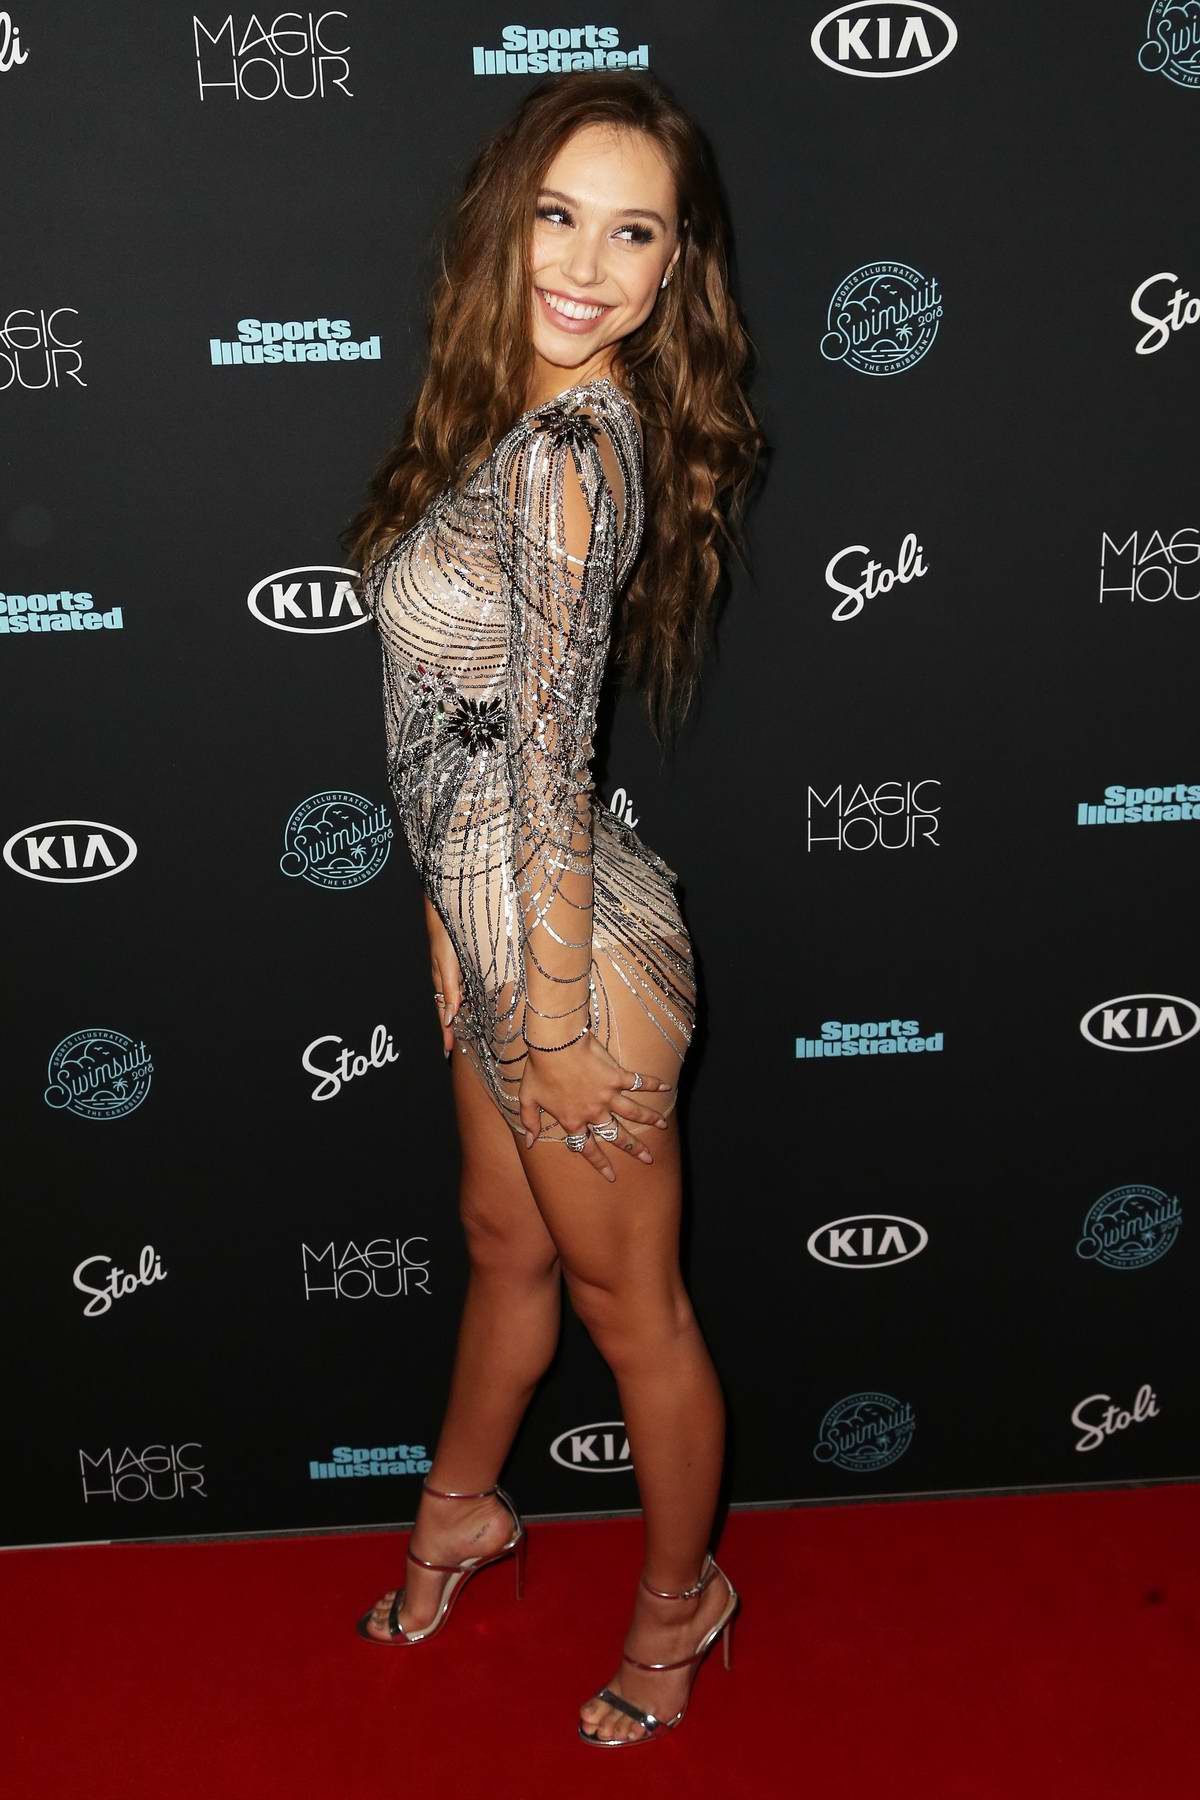 Alexis Ren attends Sports Illustrated Swimsuit 2018 Launch Event in New York City